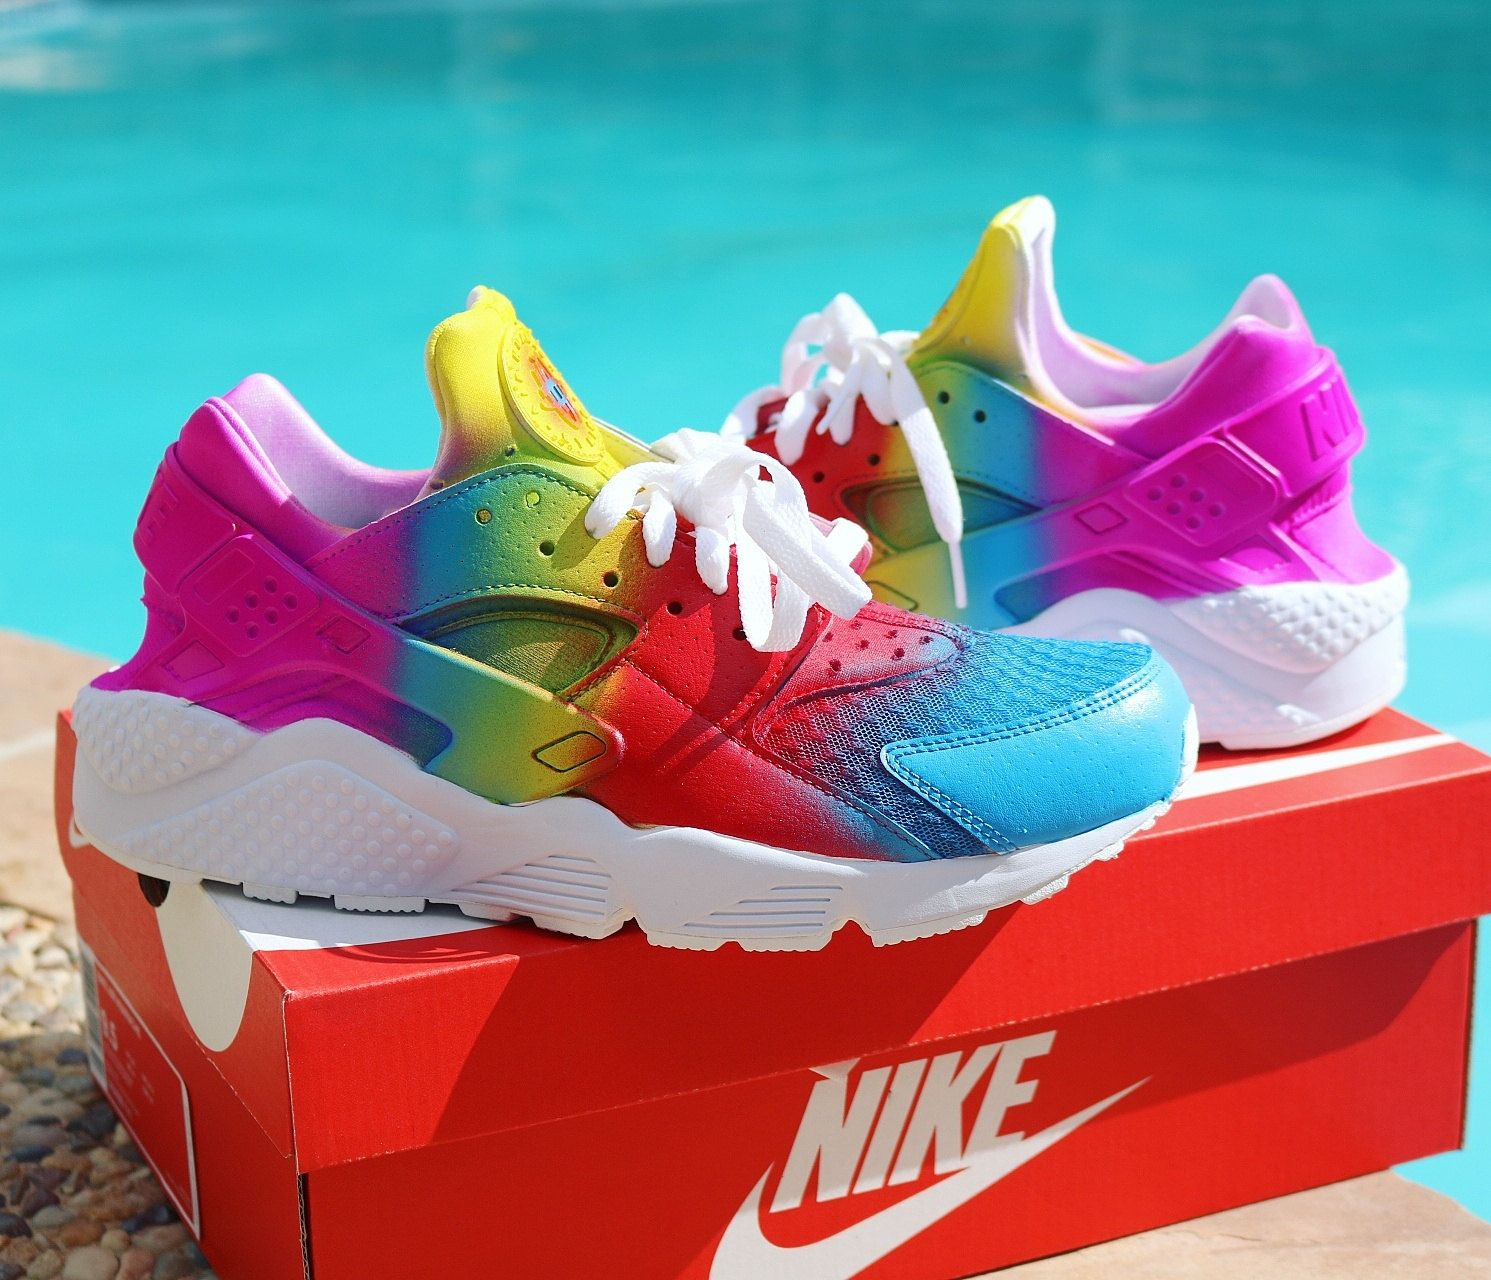 427fc62502 Custom Nike Air Huaraches 5-7 are boys 8-13 are men by DonnCustoms ...